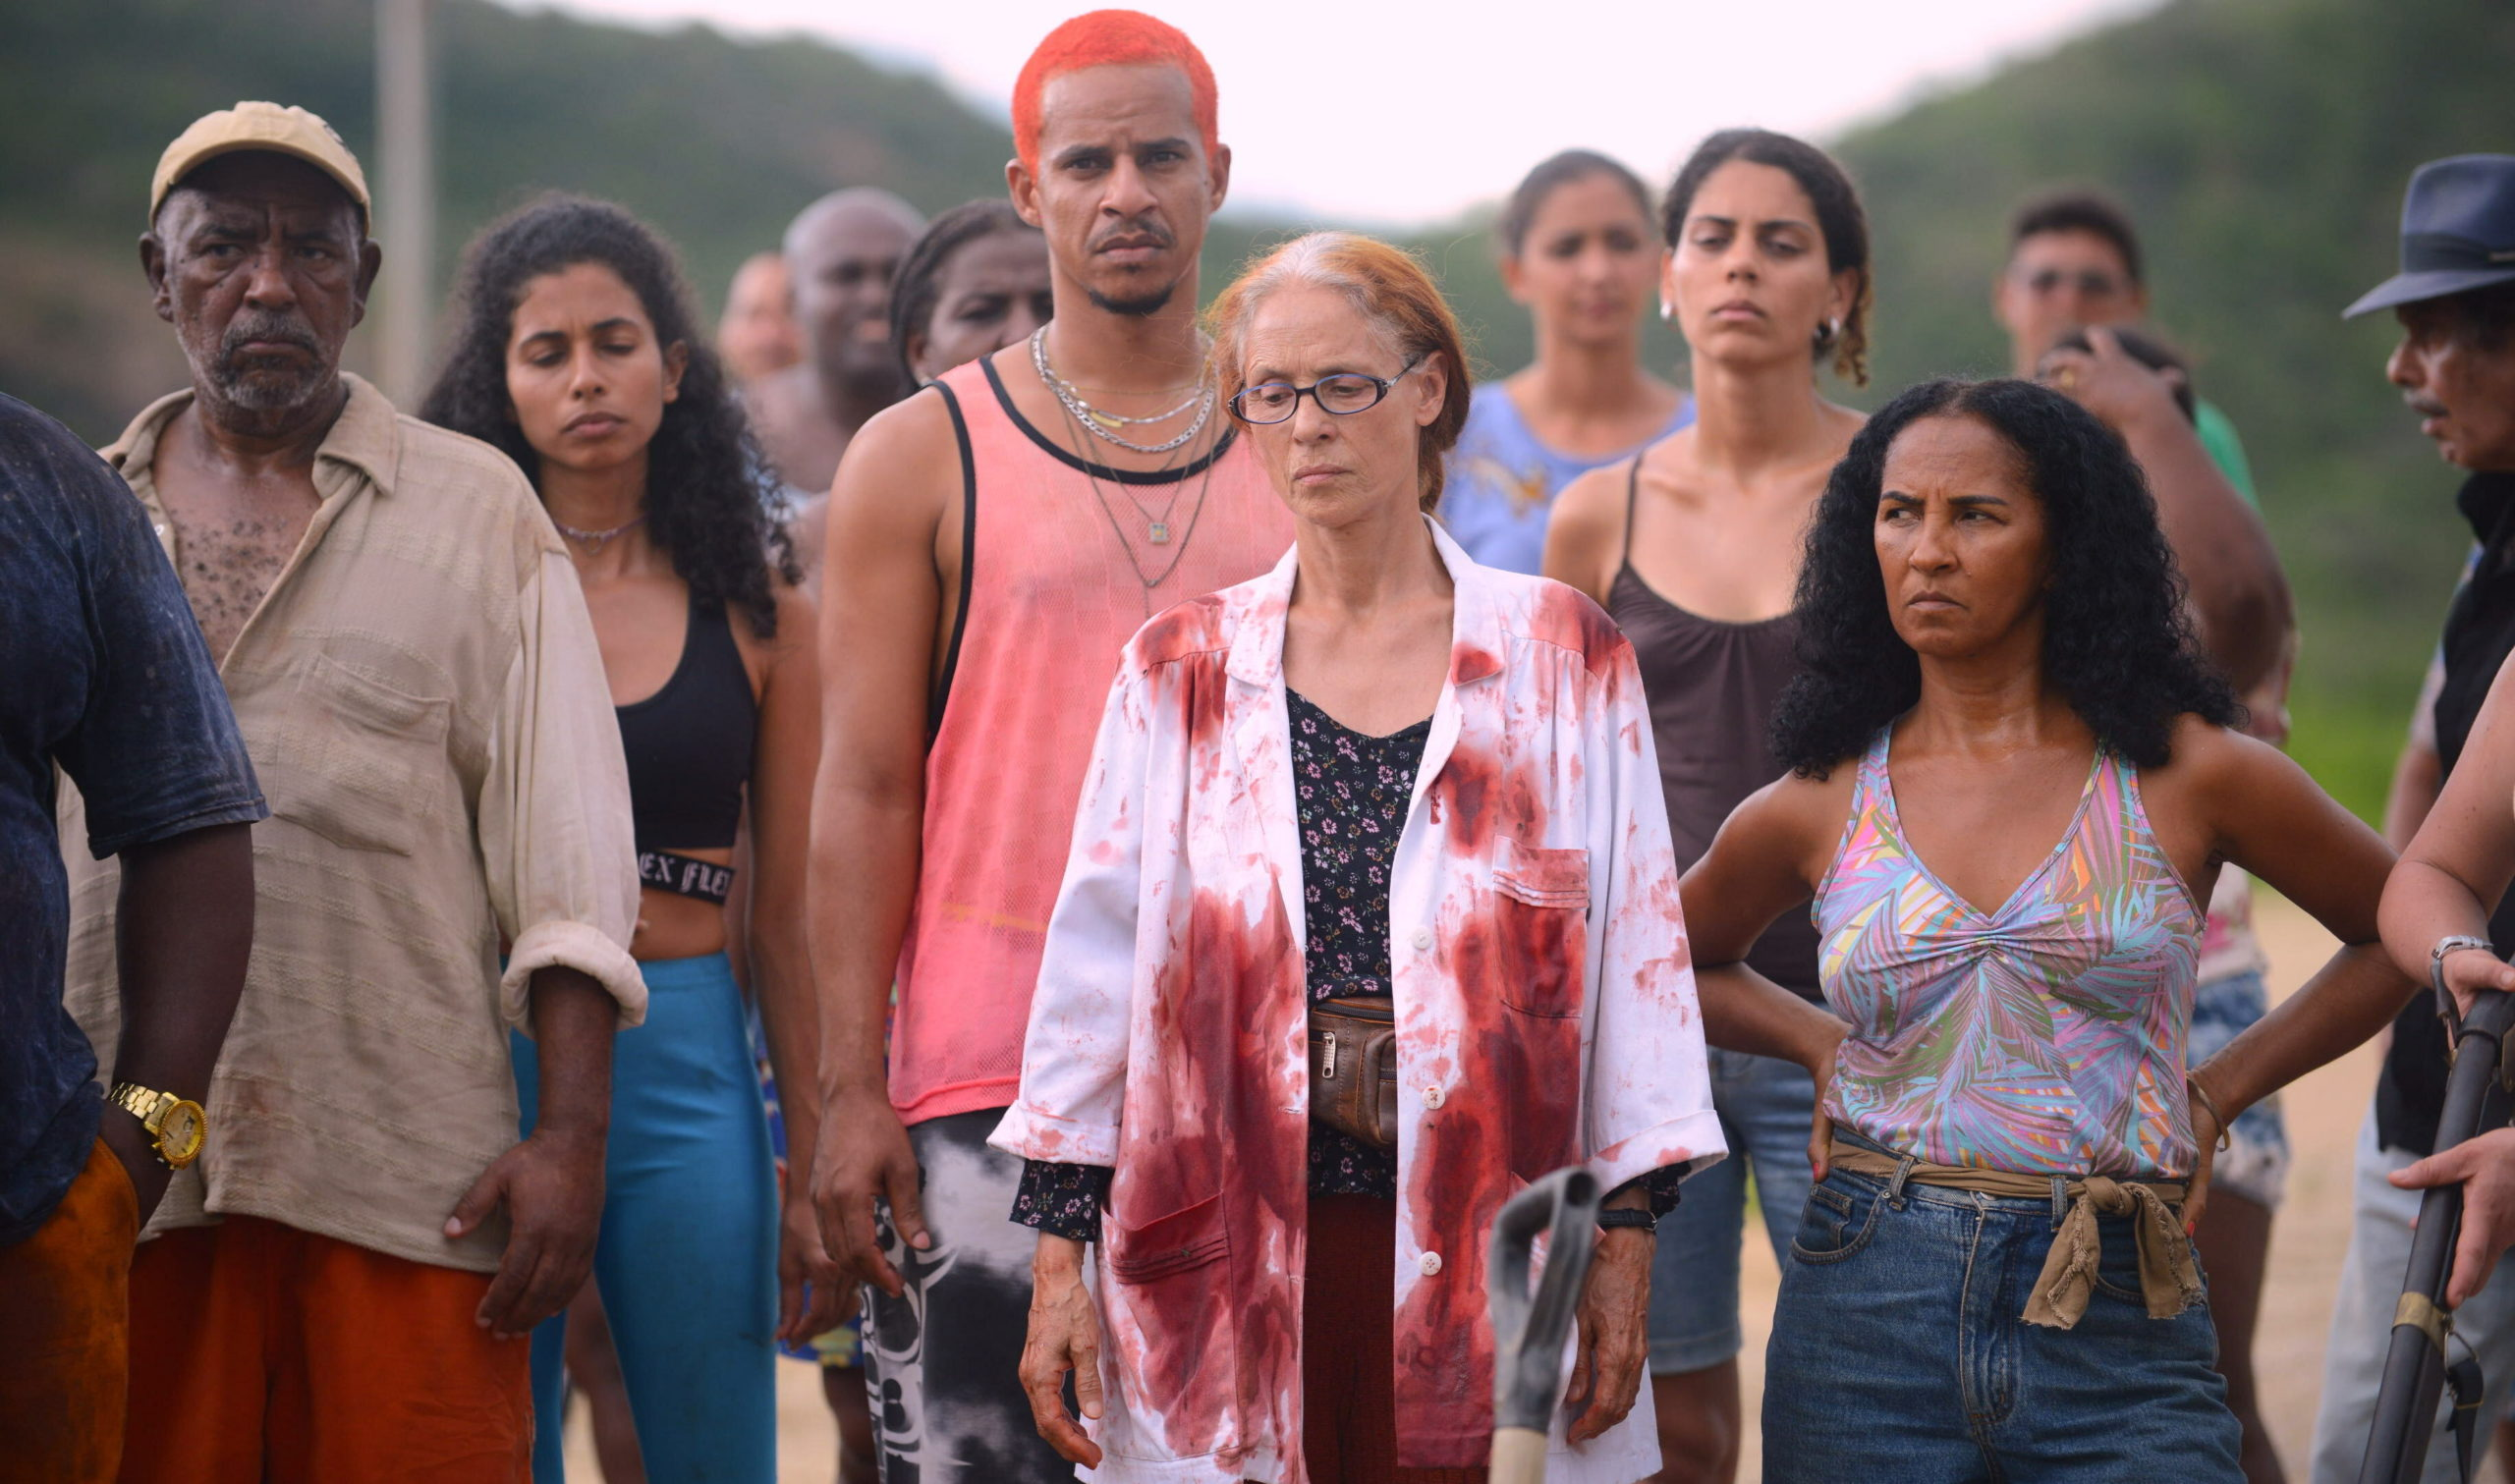 An image from the 2019 Brazilian/French film